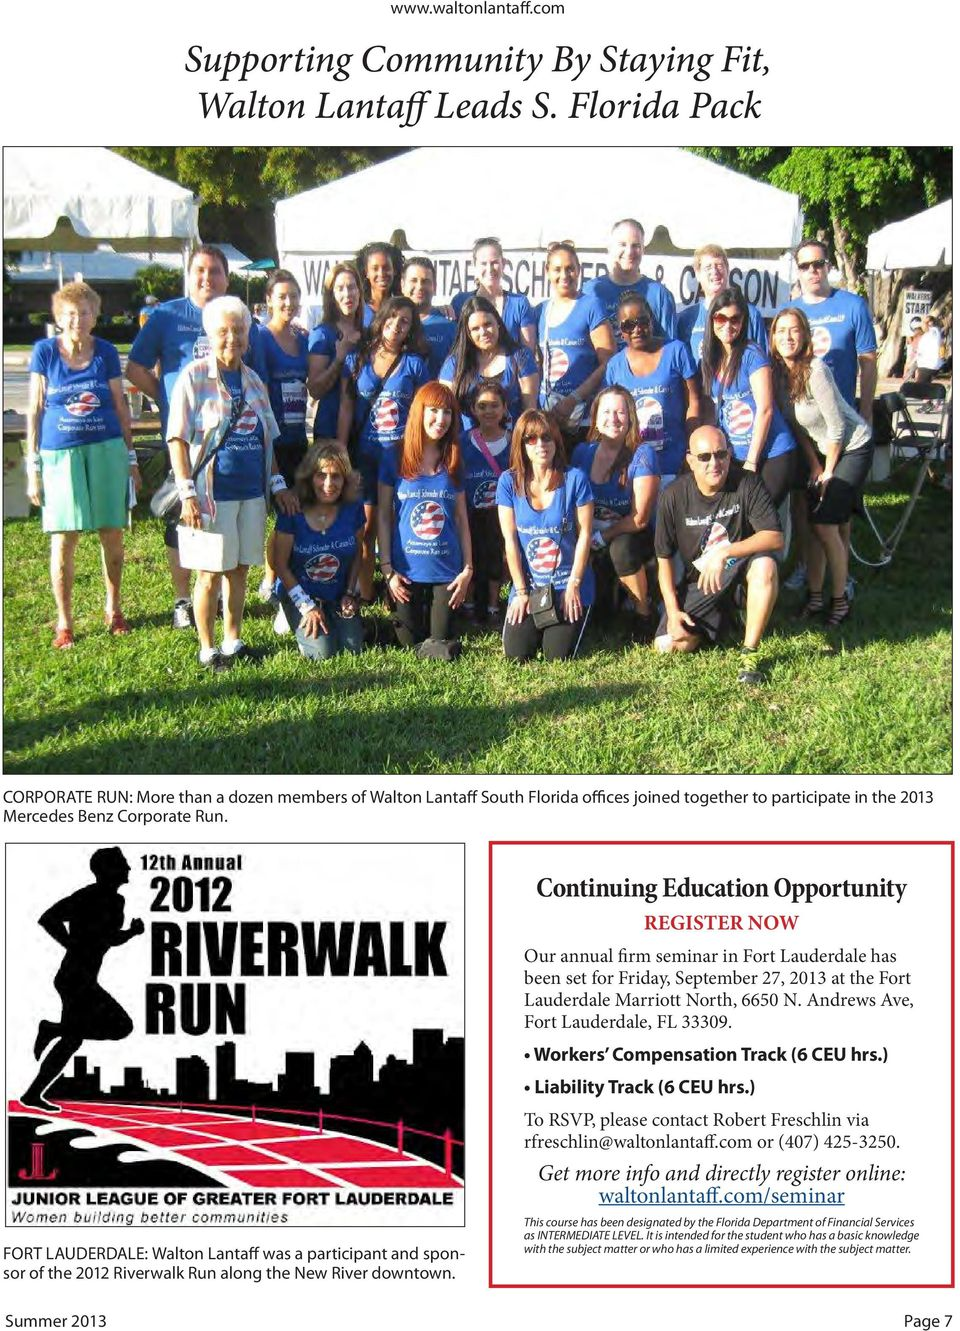 FORT LAUDERDALE: Walton Lantaff was a participant and sponsor of the 2012 Riverwalk Run along the New River downtown.